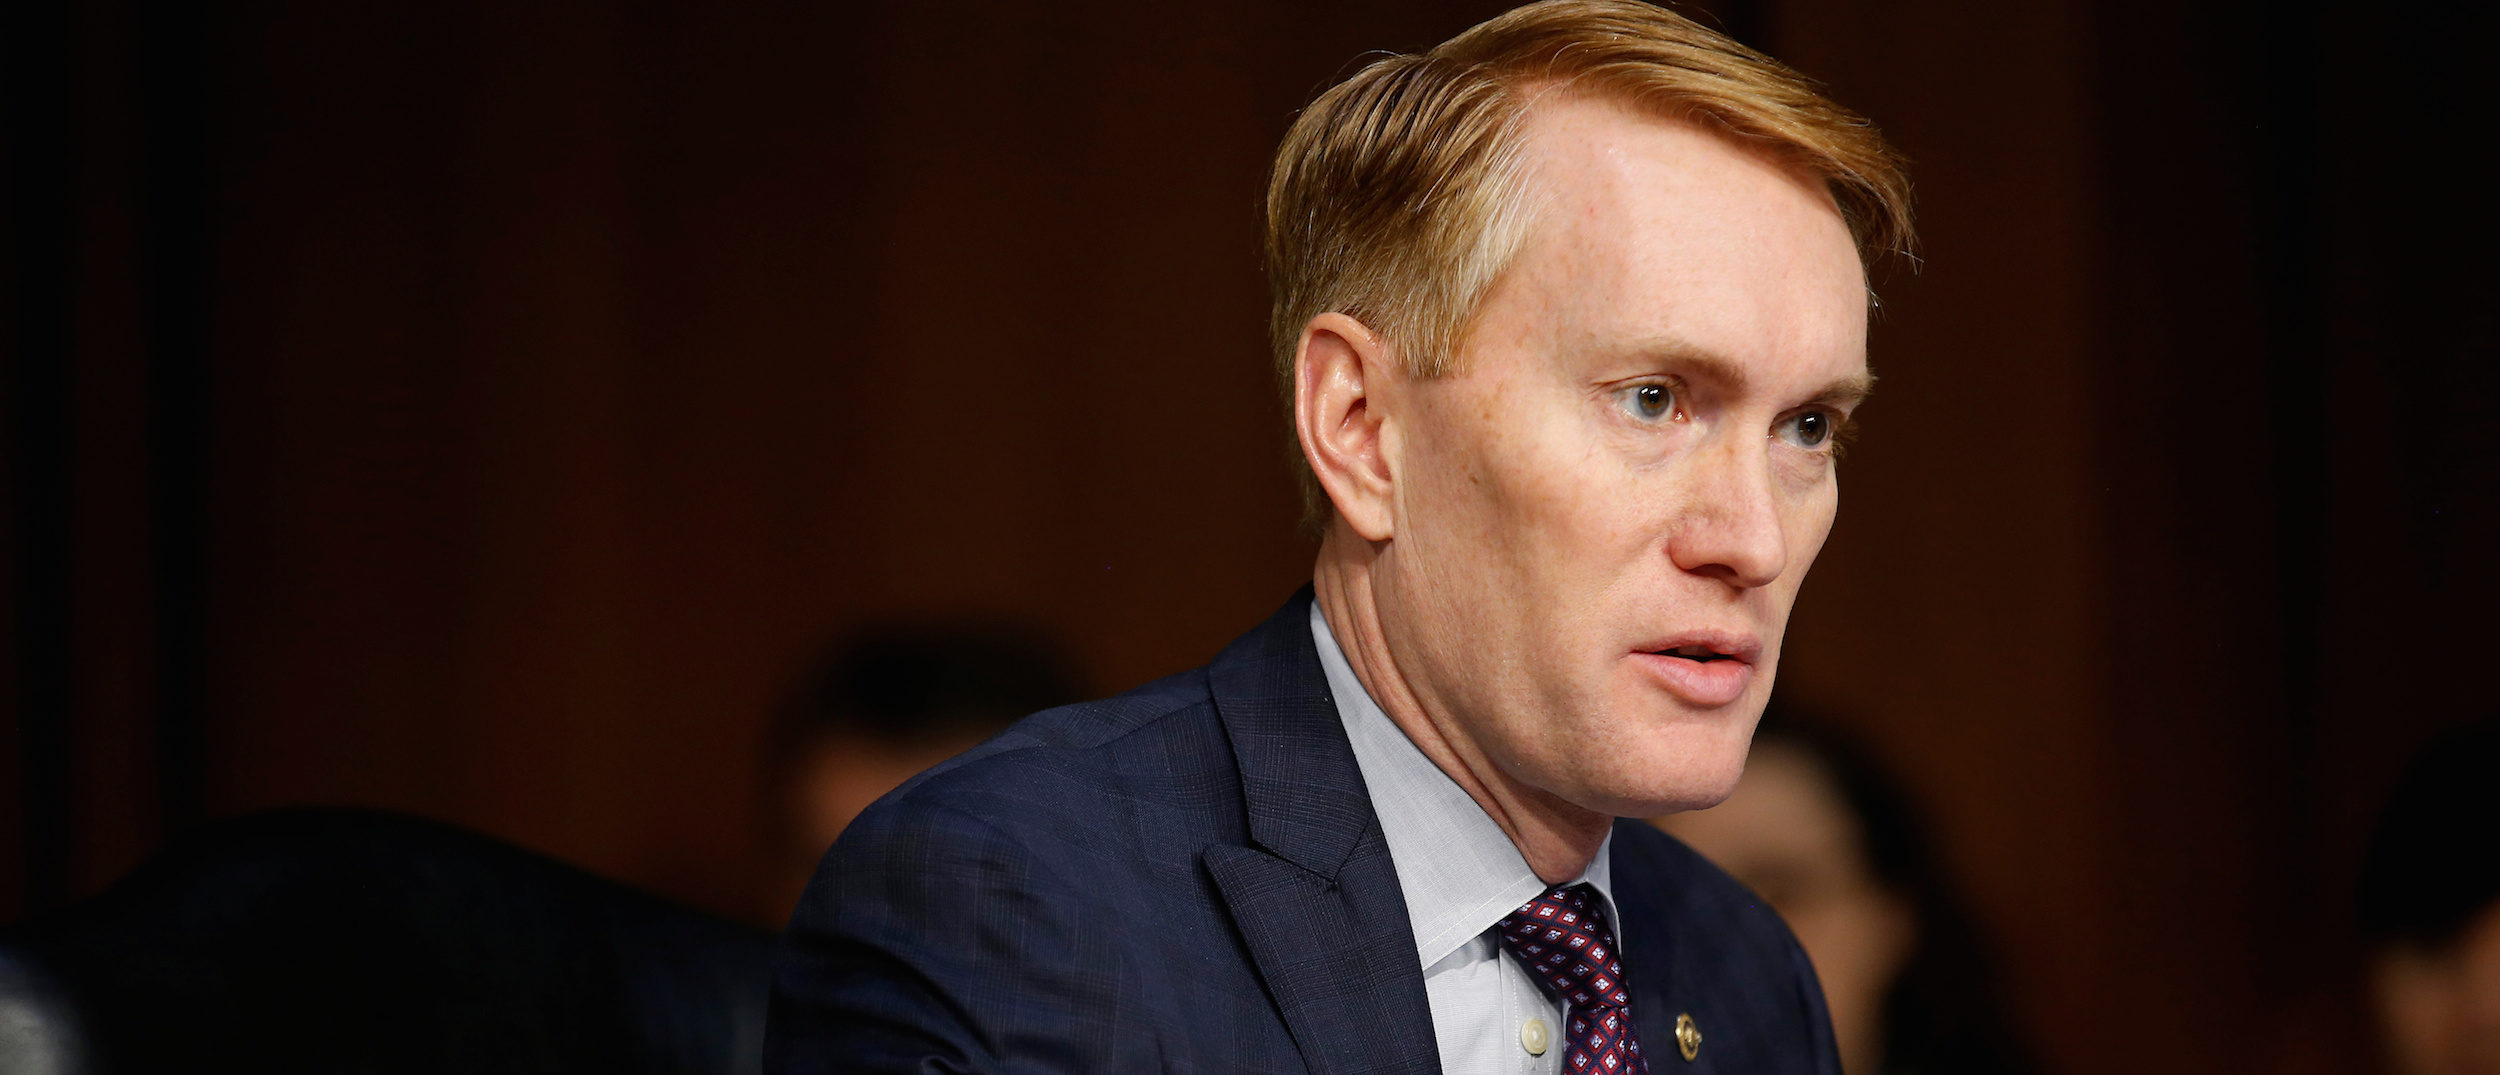 Senator James Lankford (R-OK) speaks during Senate Intelligence Committee hearing to answer questions related to Russian use of social media to influence U.S. elections, on Capitol Hill in Washington, November 1, 2017. REUTERS/Joshua Roberts